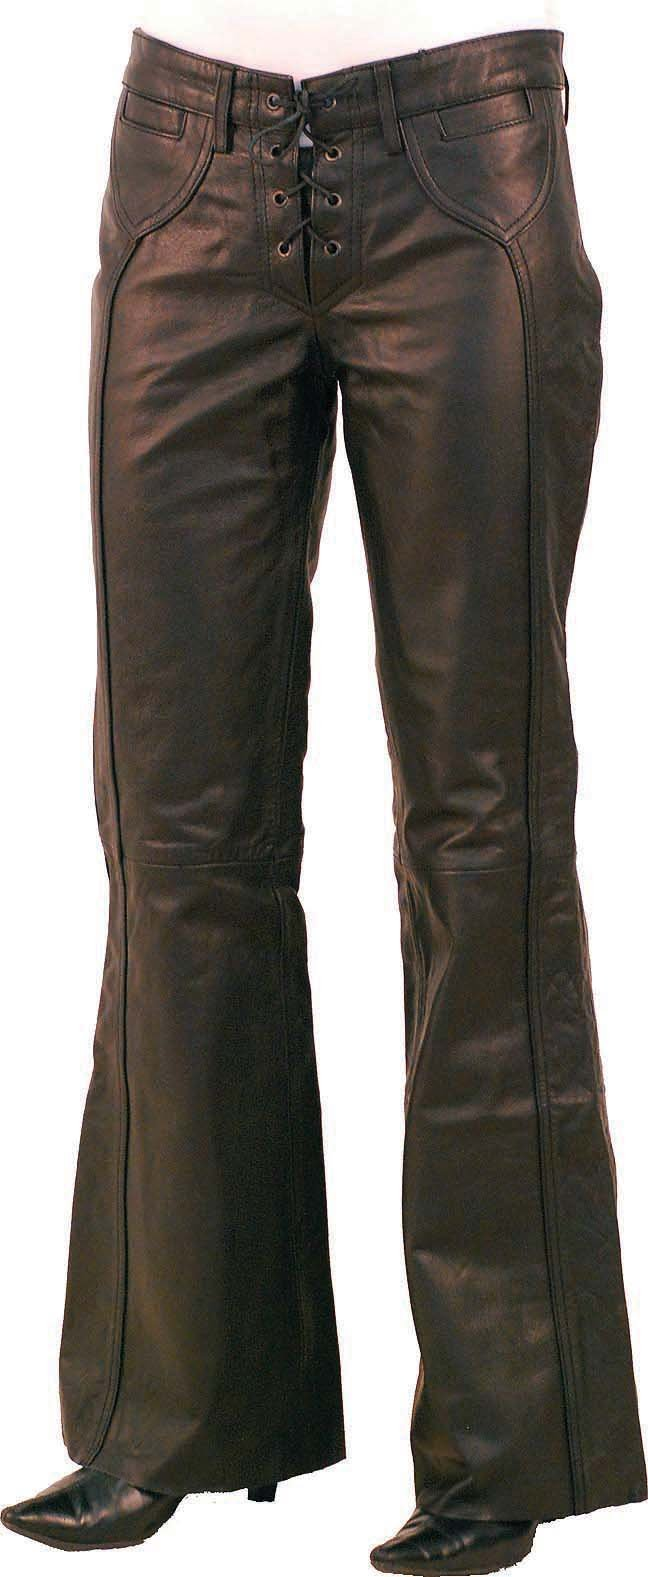 Jamin' Leather Bell Bottom Lace Up Leather Pants for Women (10) #LP2071LK by Jamin' Leather